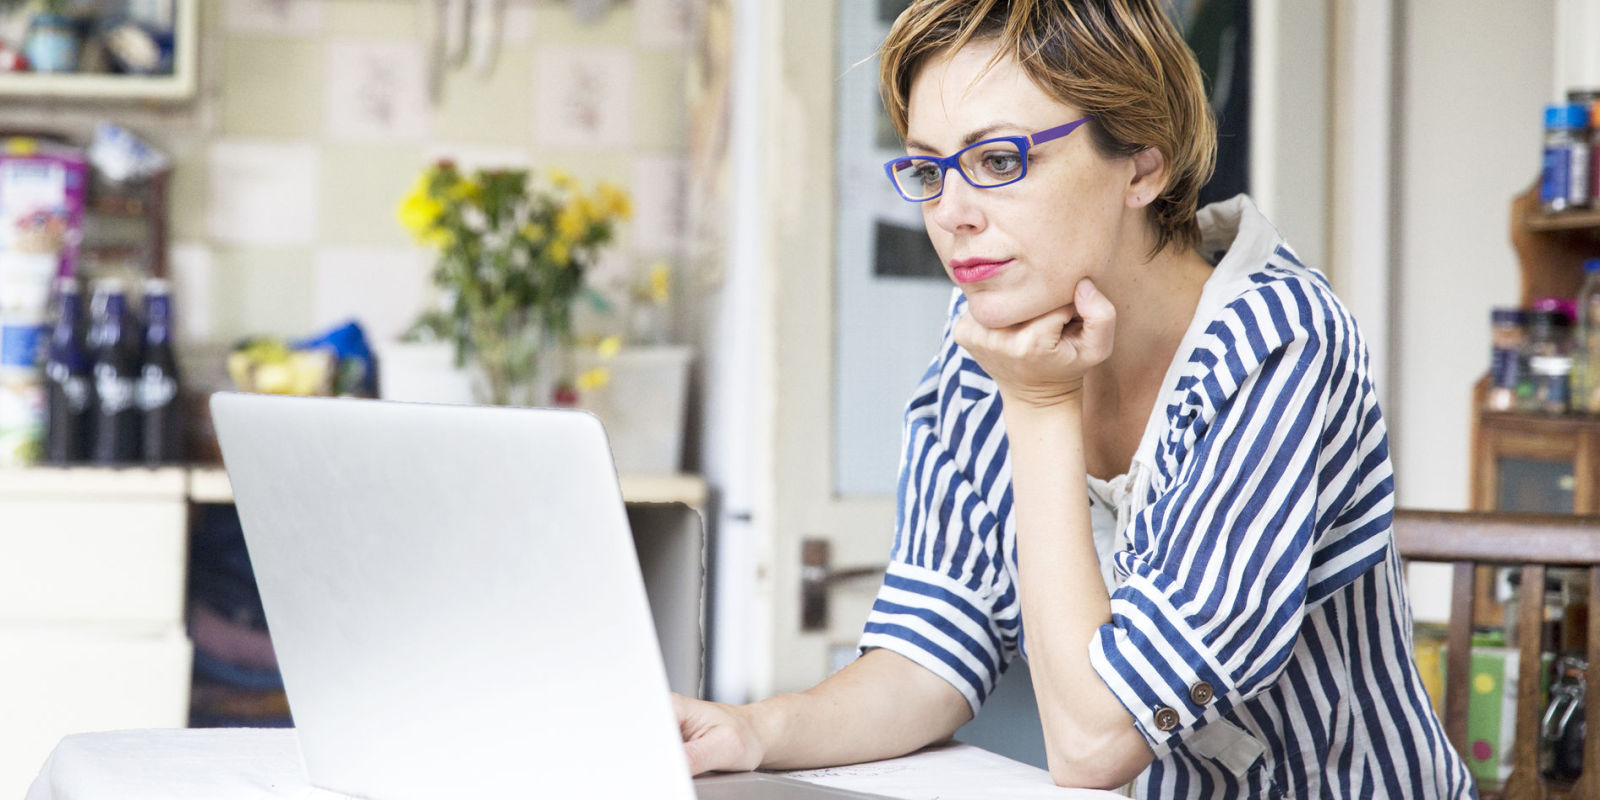 12 best work from home jobs ideas for working at home